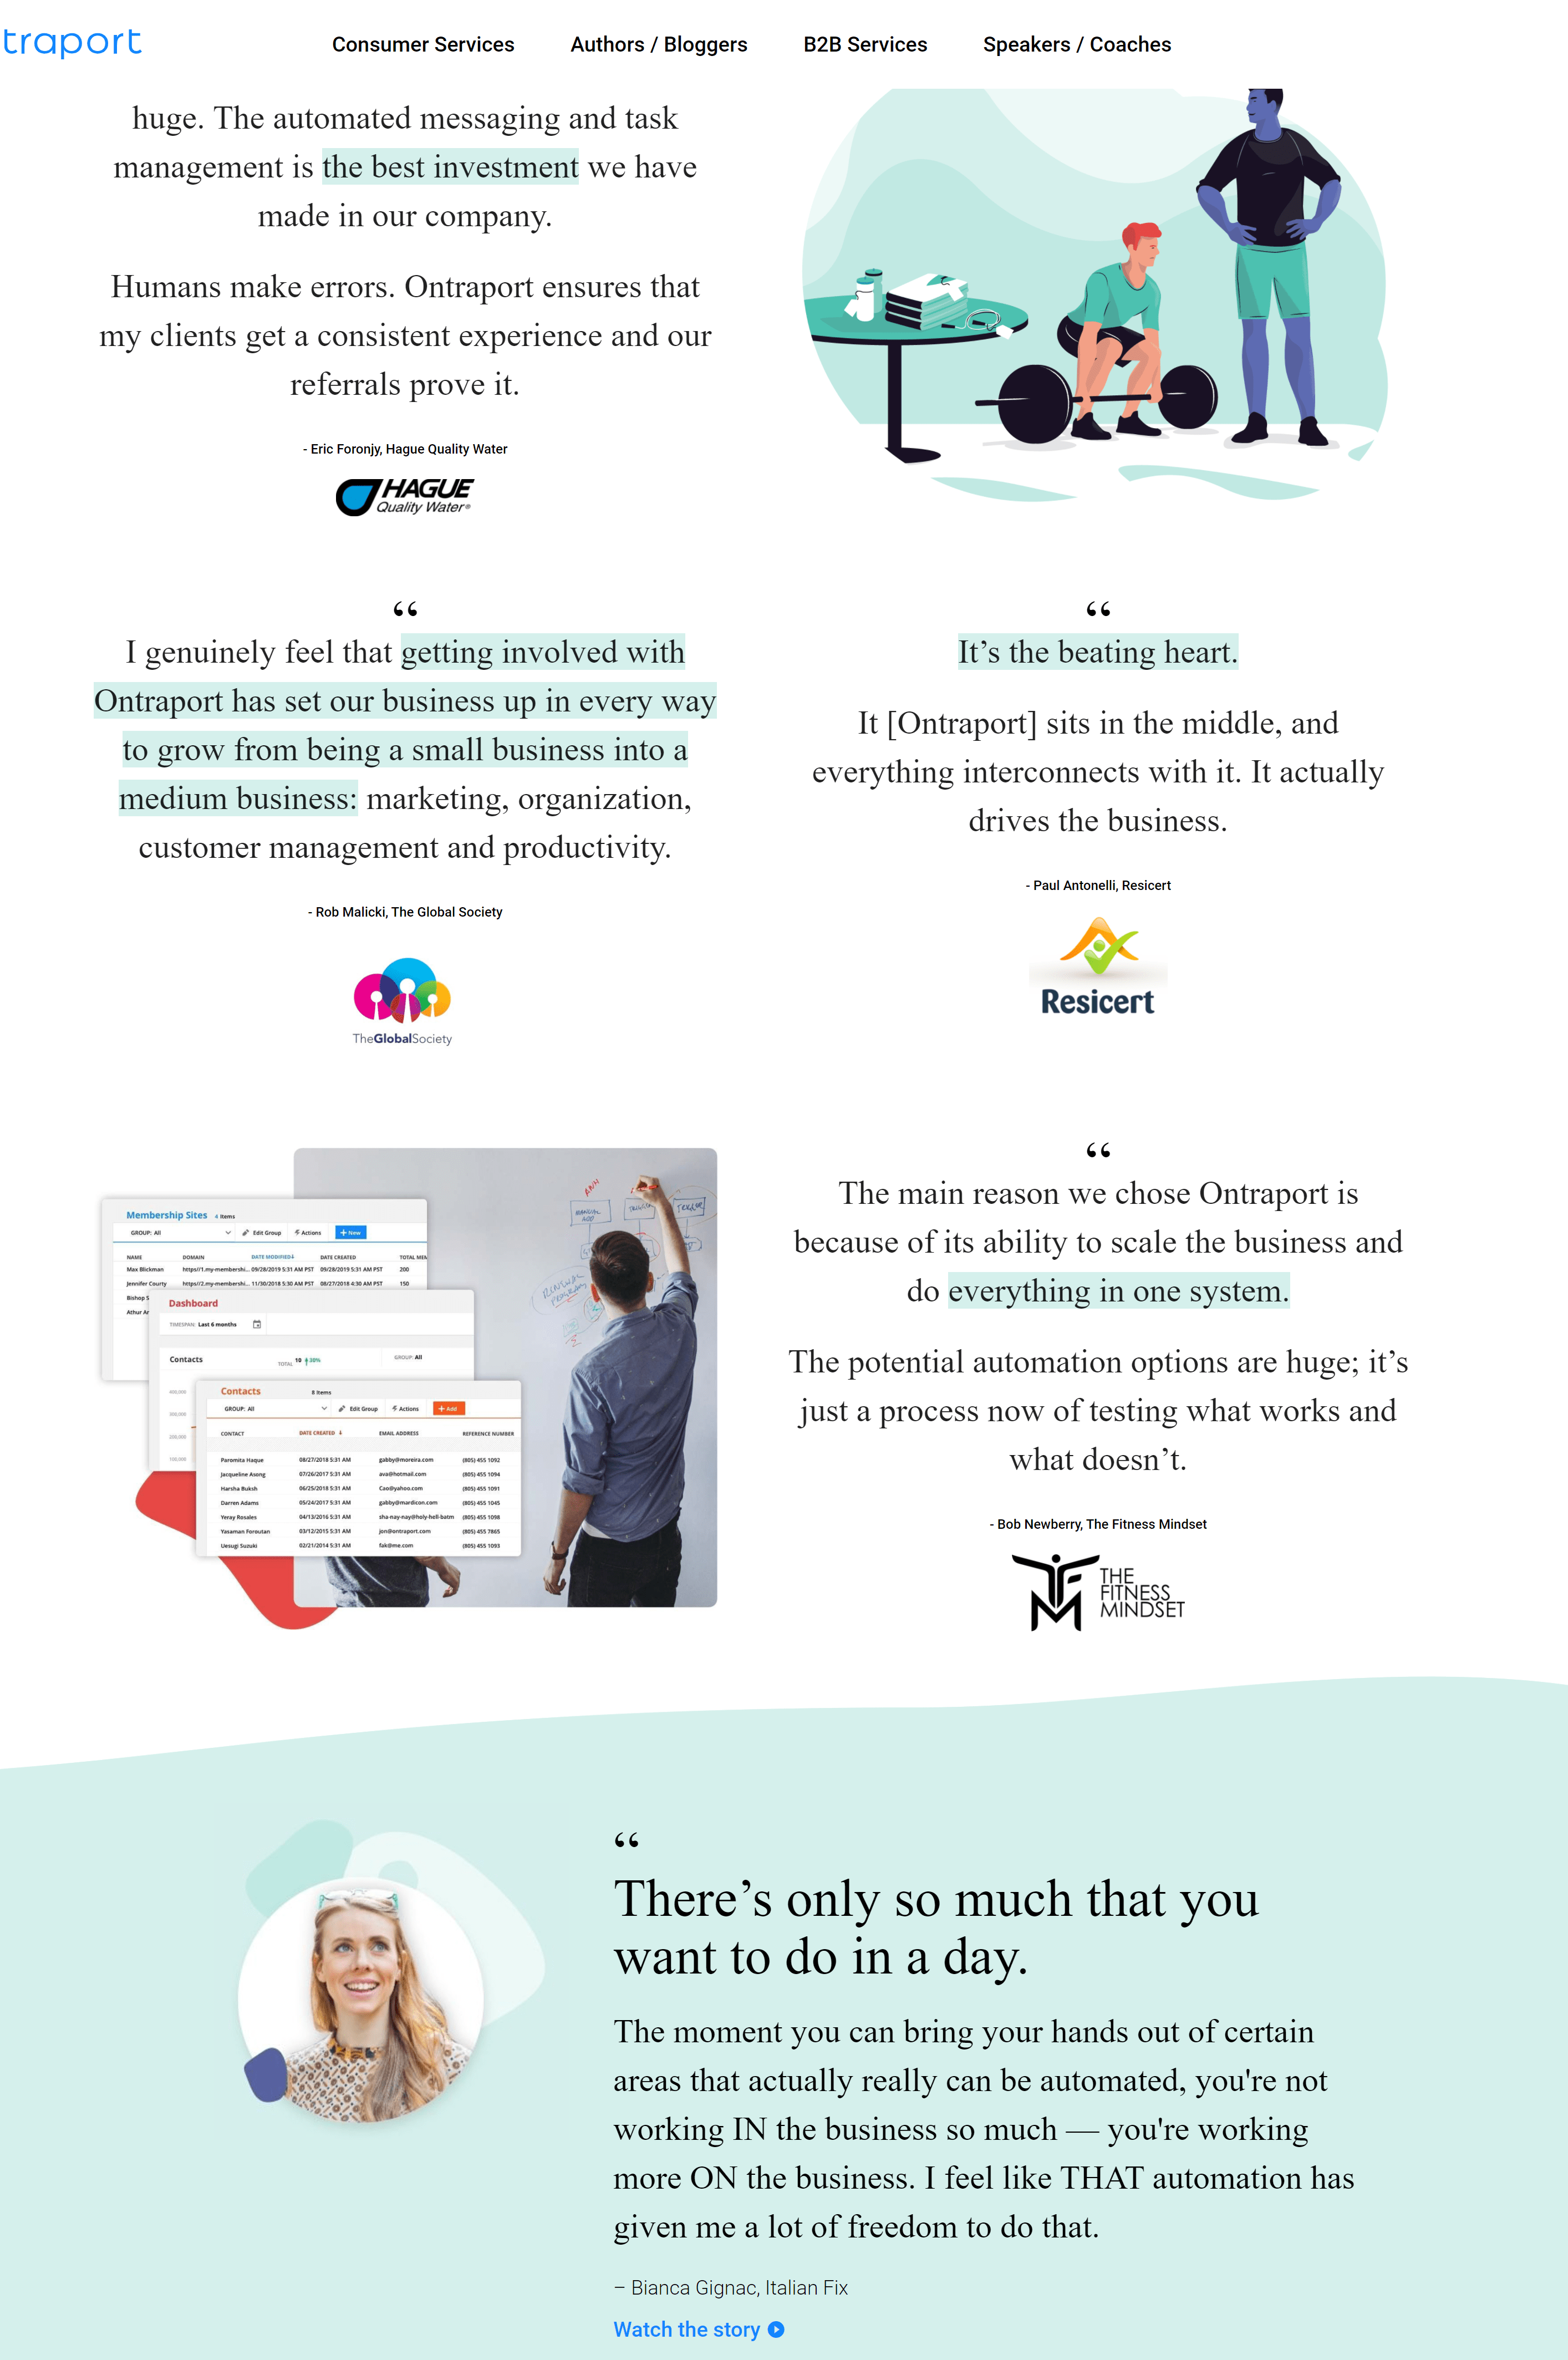 Read Reviews From Real Users Ontraport